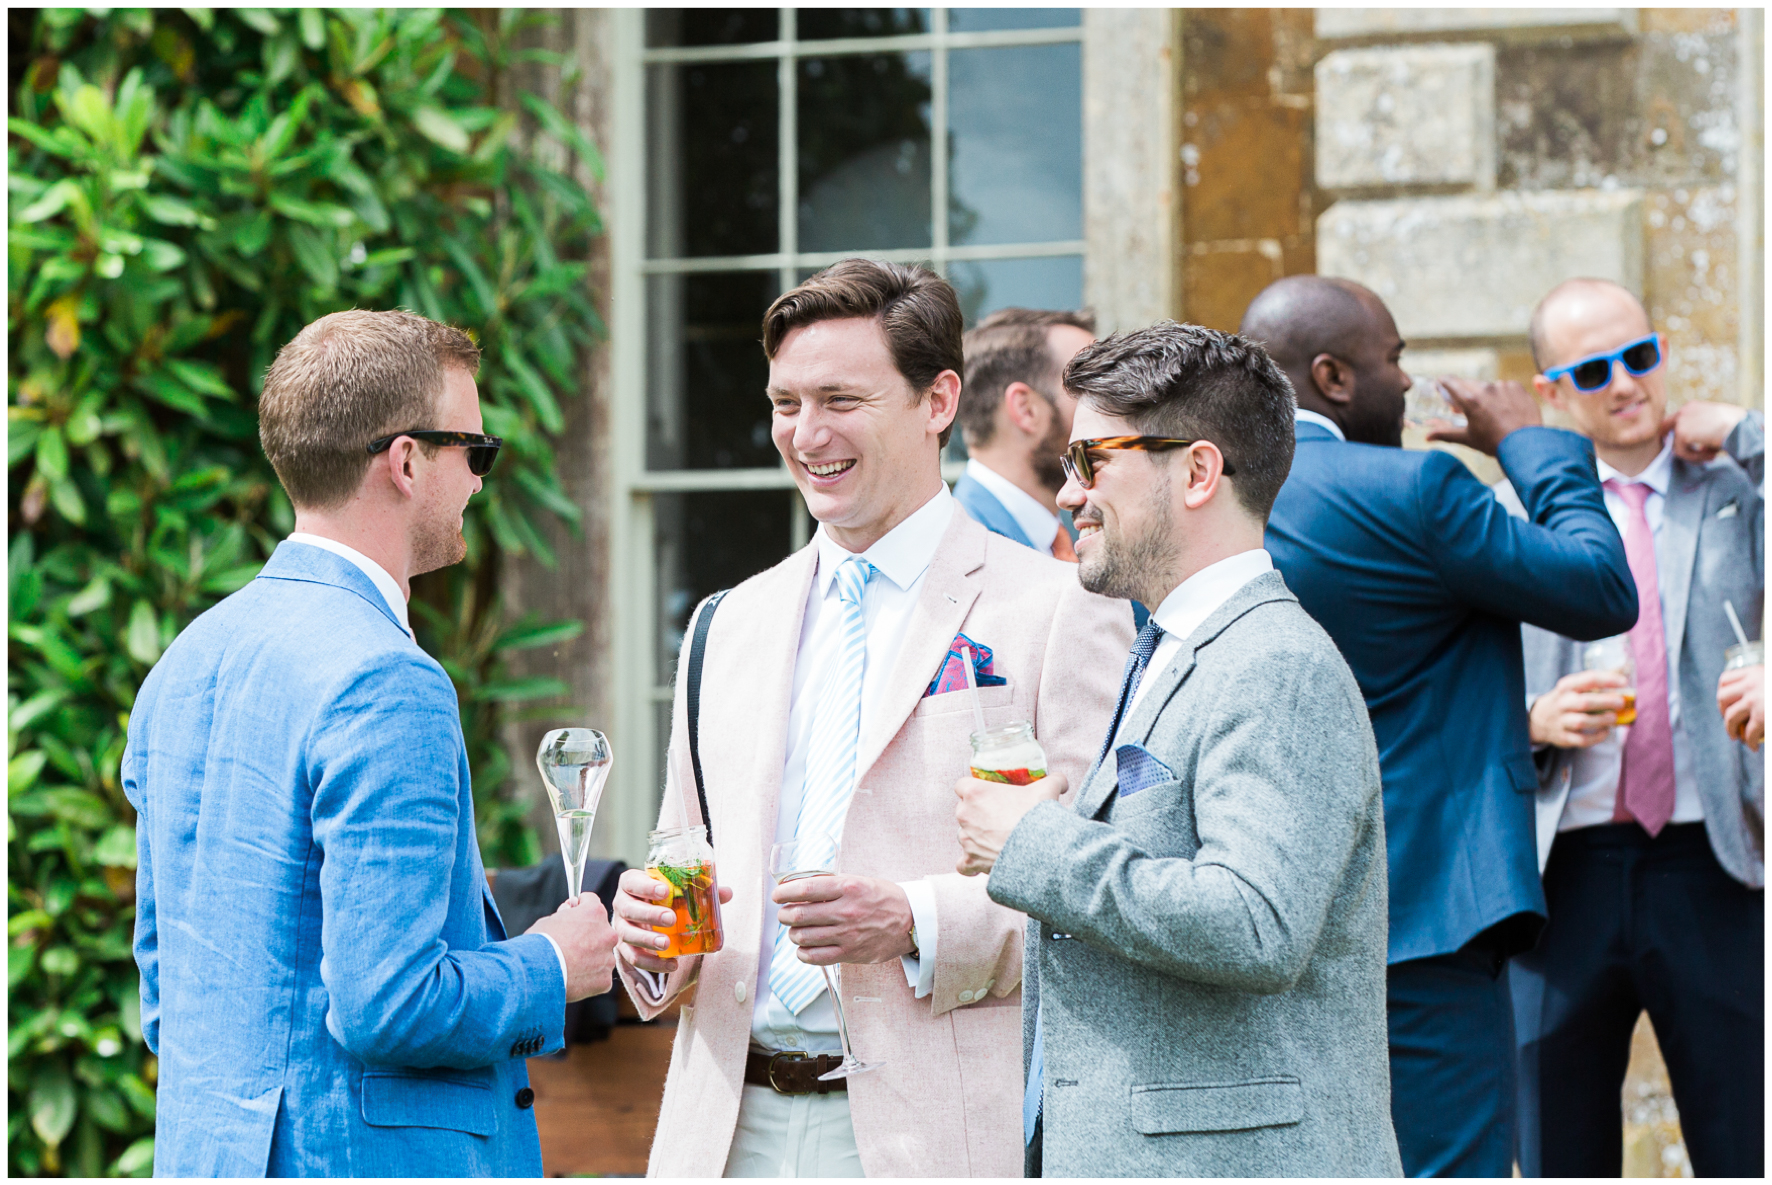 Aynhoe Park wedding, wedding guests, drinks reception